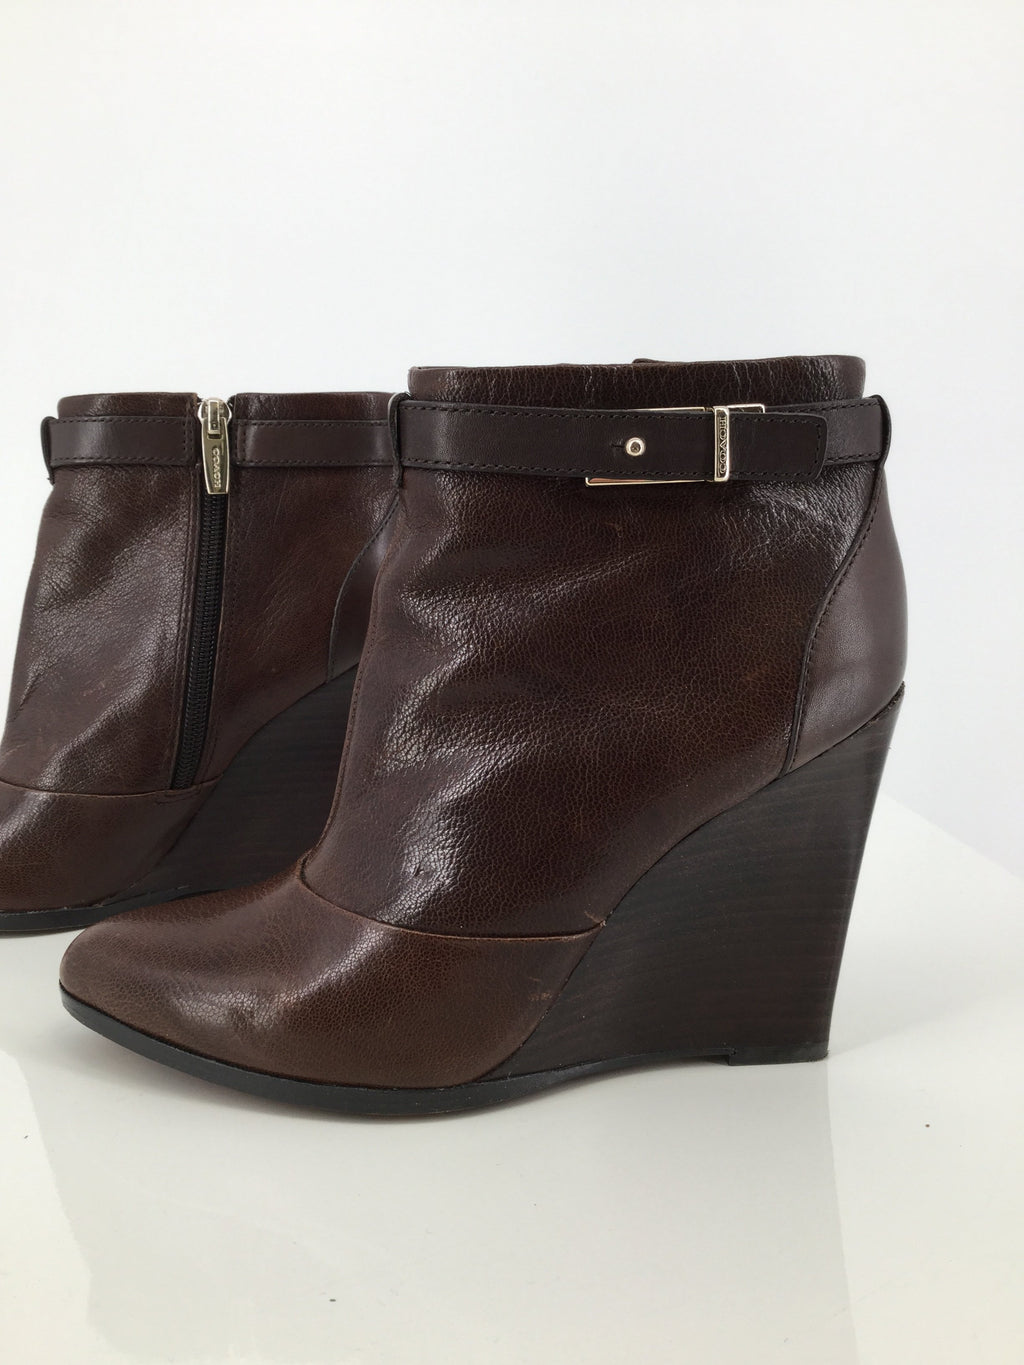 Coach Brown Leather Ankle Boots Size 7